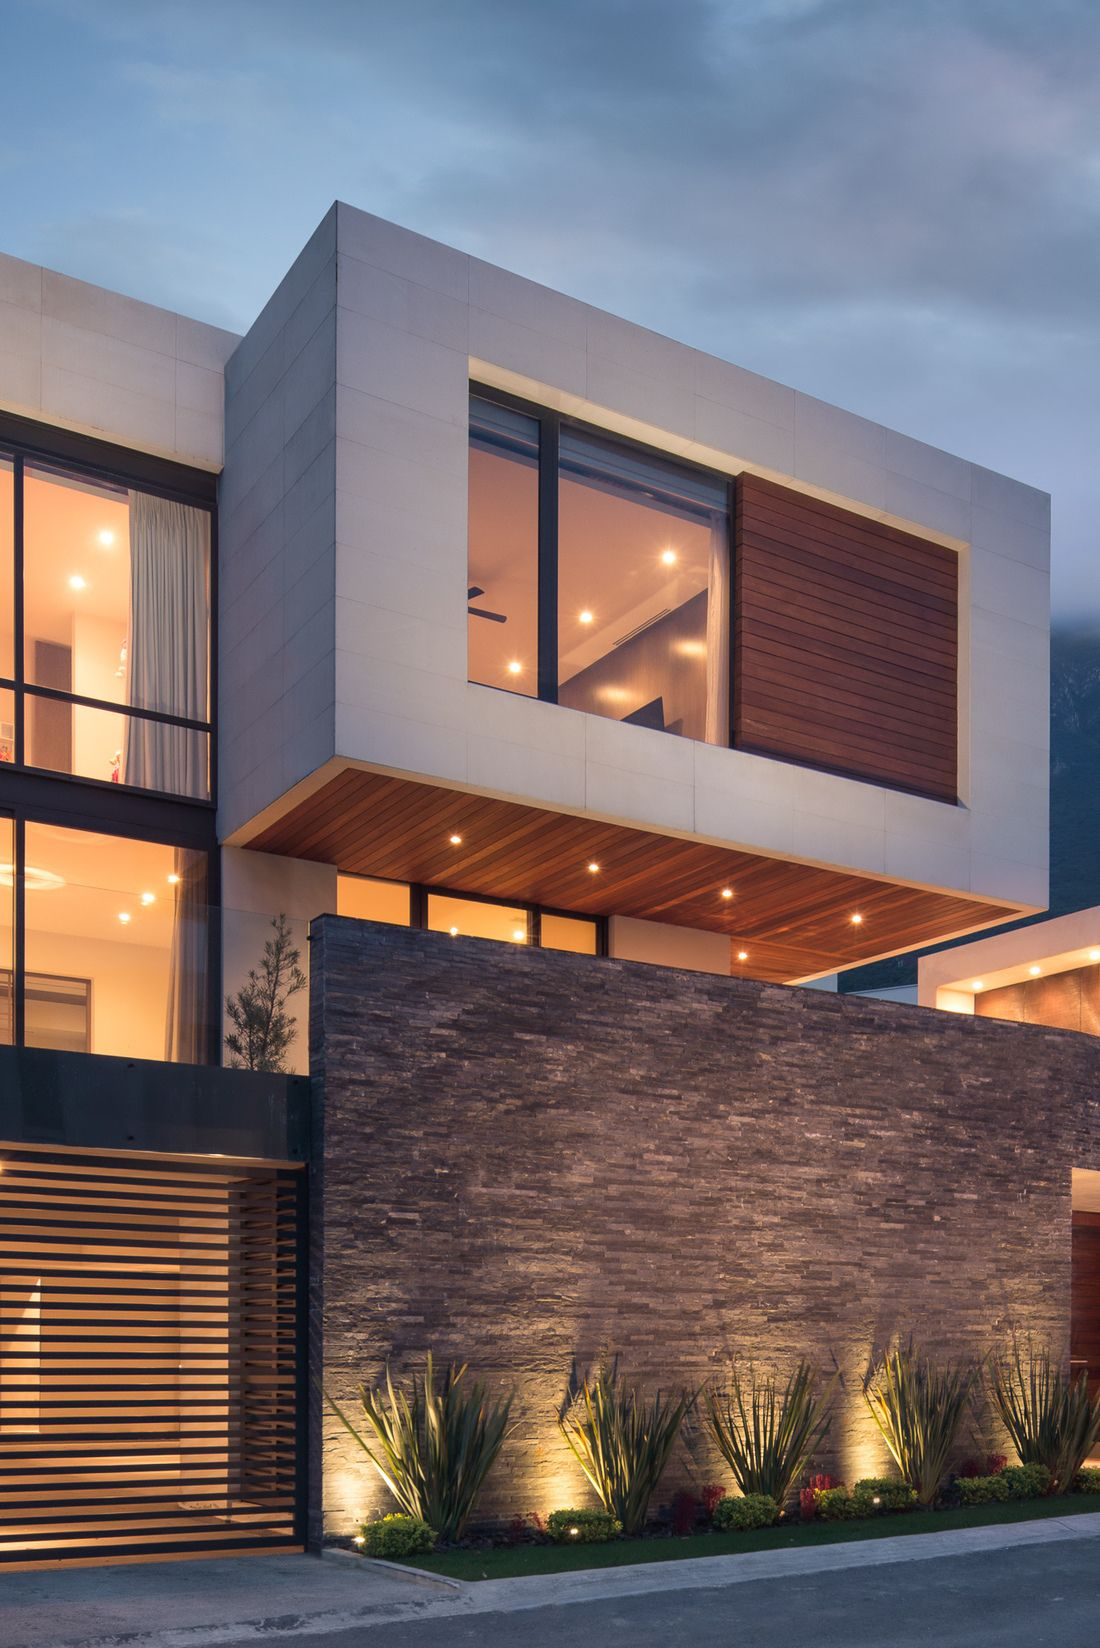 This Lantern Inspired House Design Lights Up A California - Interior design for modern house